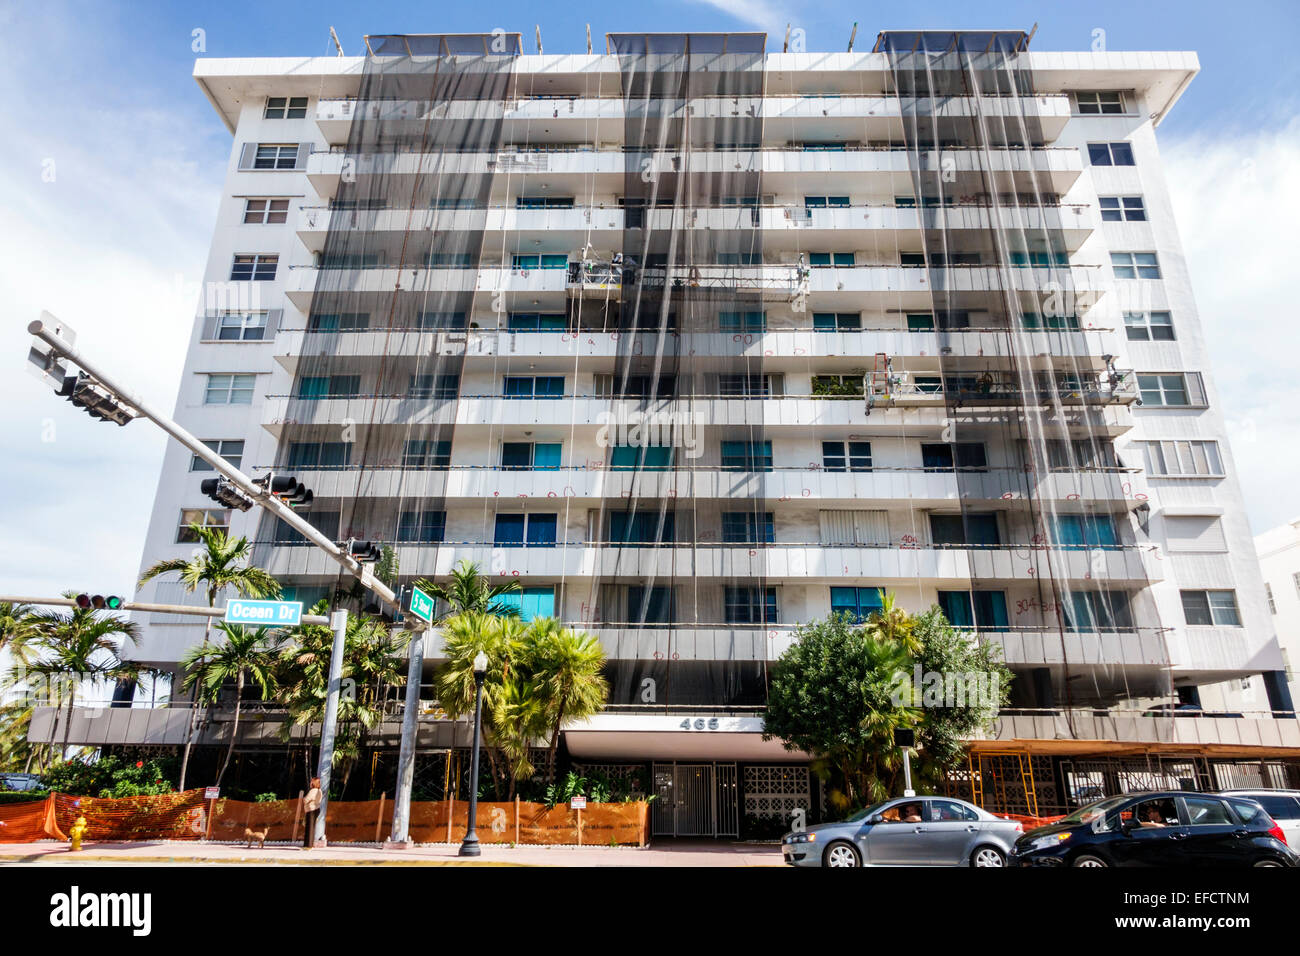 Miami Beach Florida Ocean Drive Royal Atlantic Condominiums undergoing renovation repair building debris screens - Stock Image